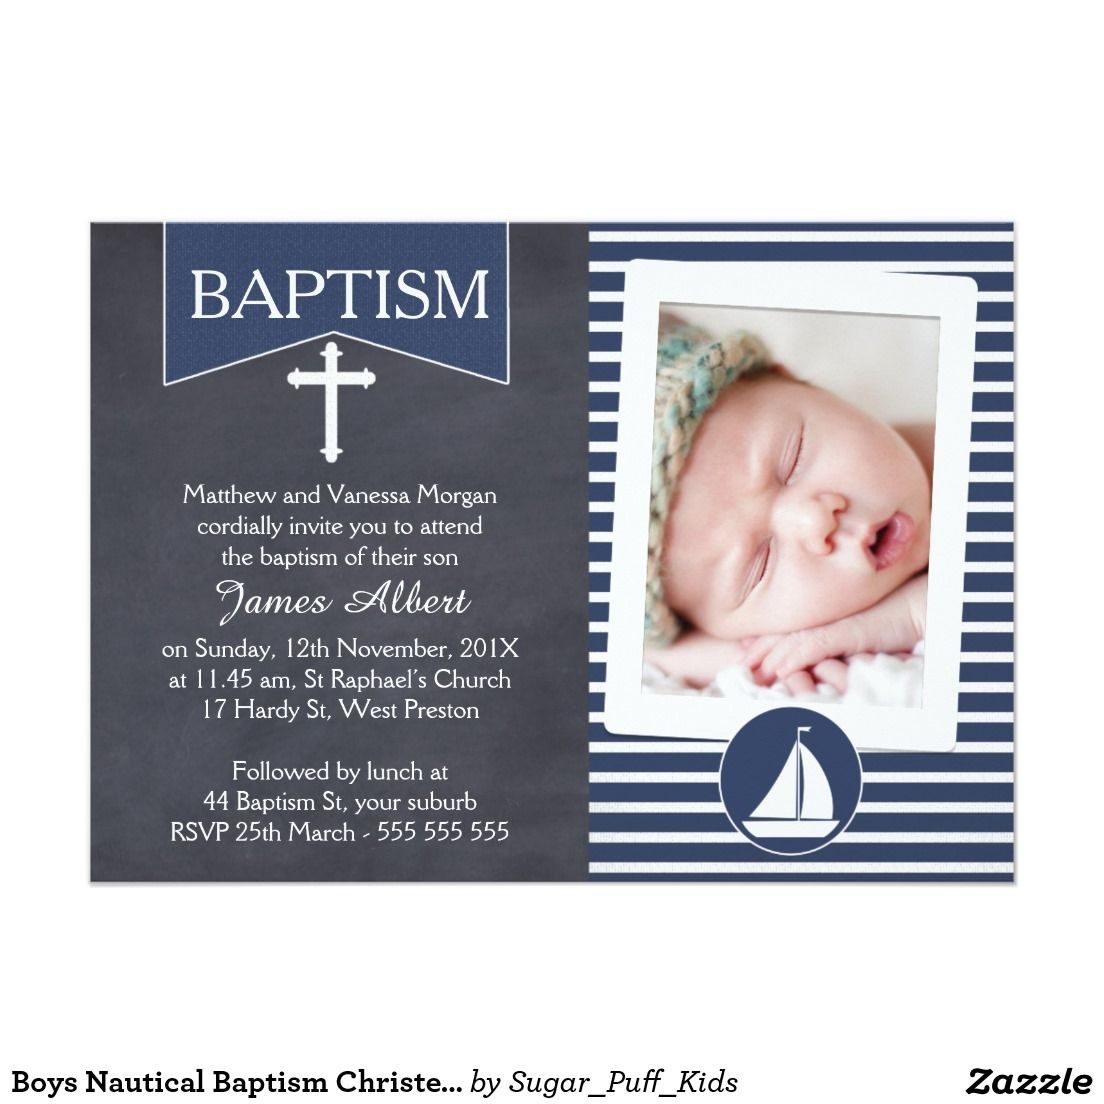 Boys Nautical Baptism Christening Invitation Boys Nautical